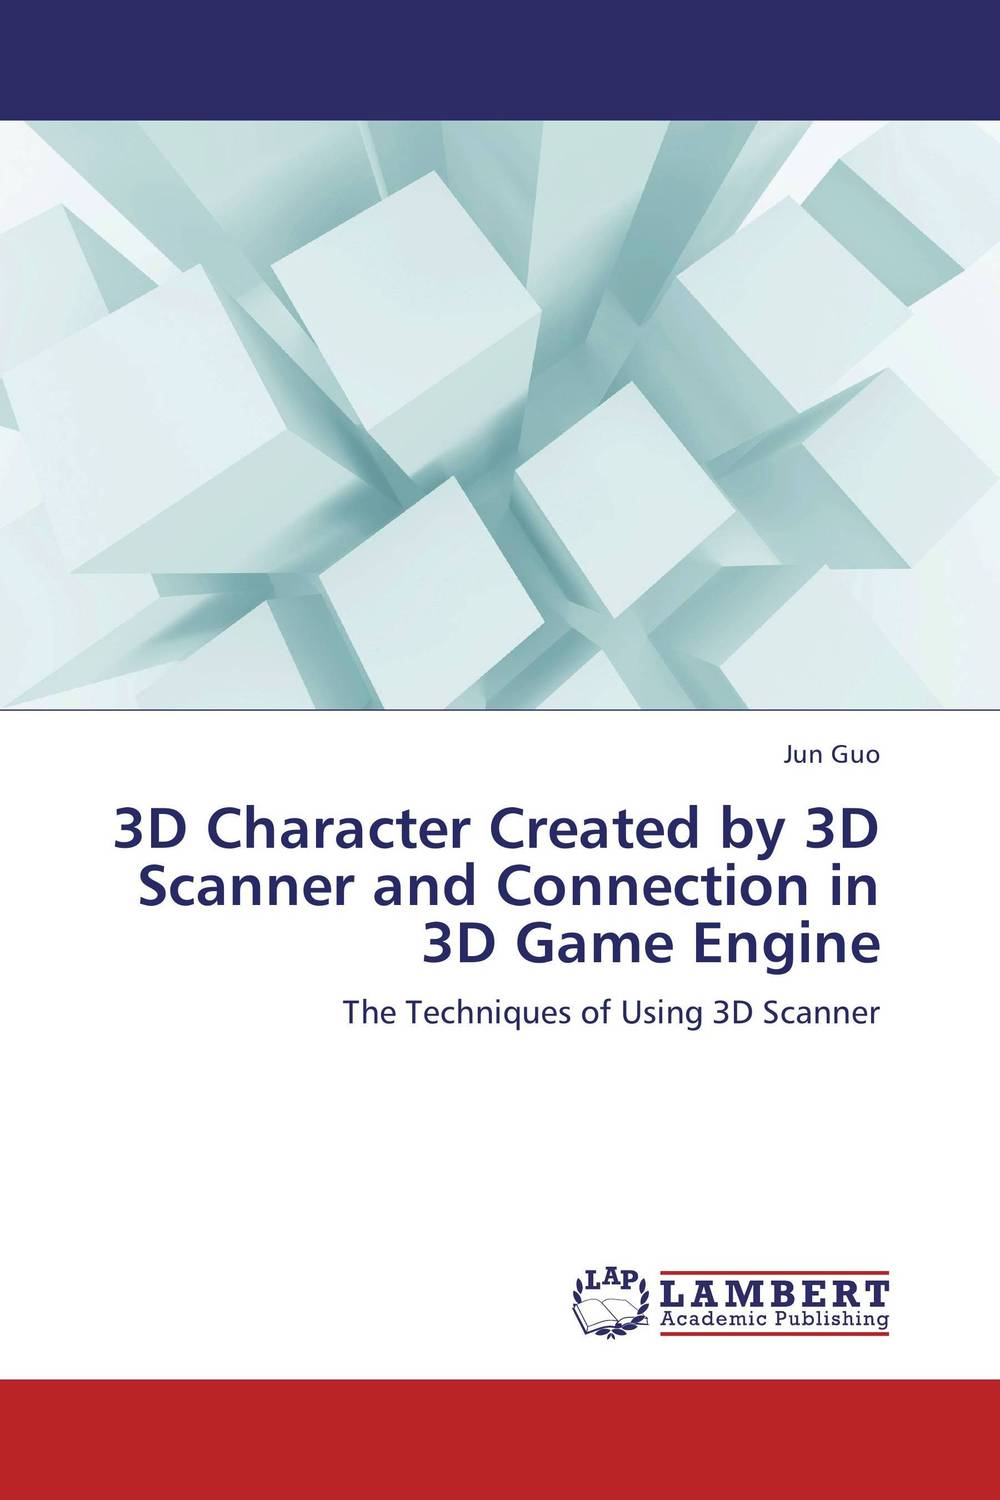 3D Character Created by 3D Scanner and Connection in 3D Game Engine sanwa button and joystick use in video game console with multi games 520 in 1